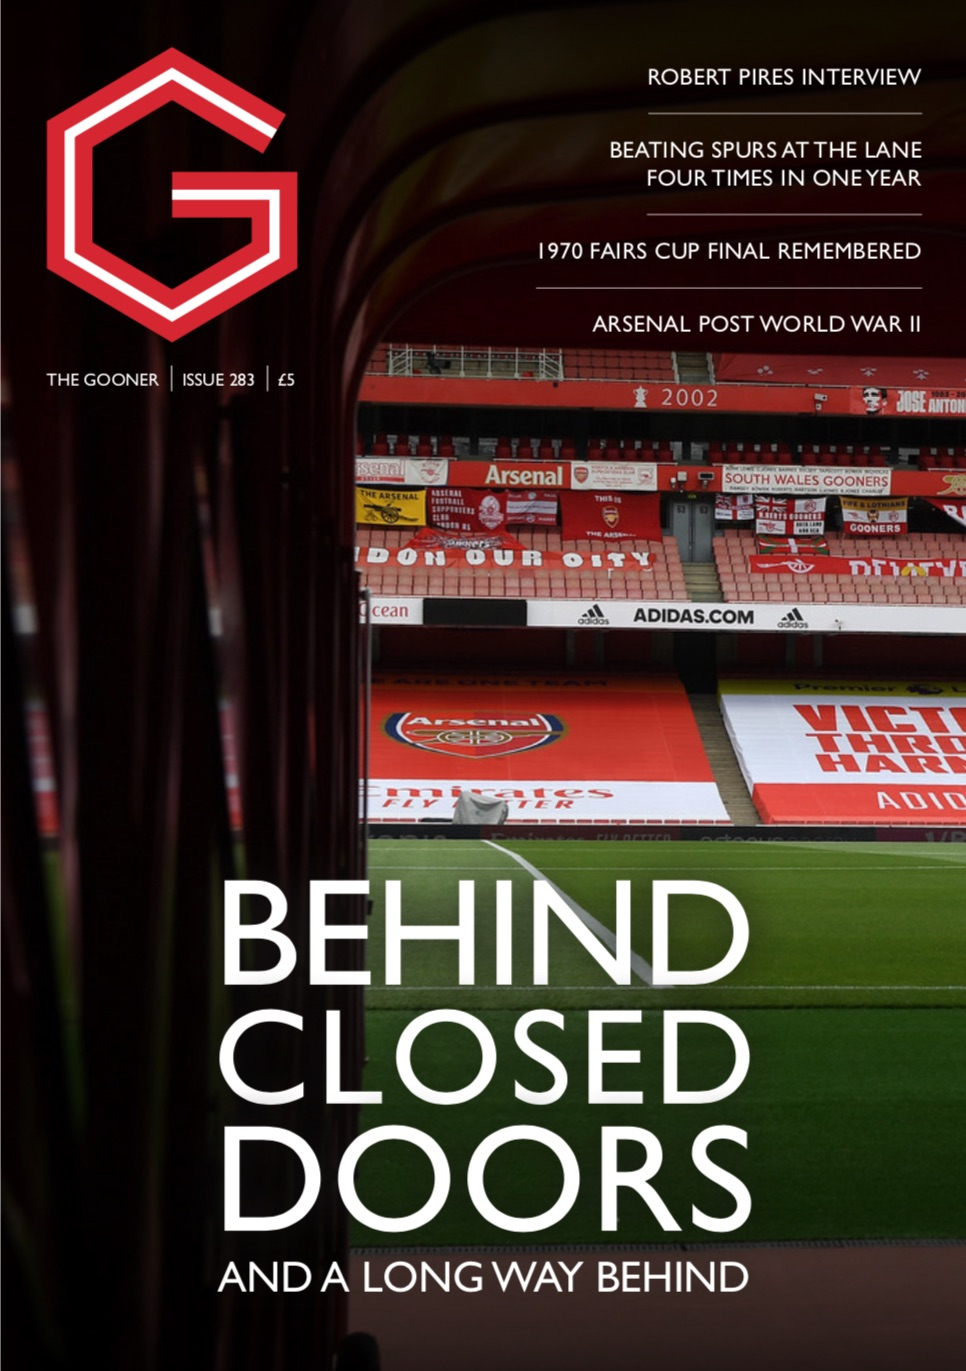 Behind Closed Doors Edition - Gooner 283 (UK)